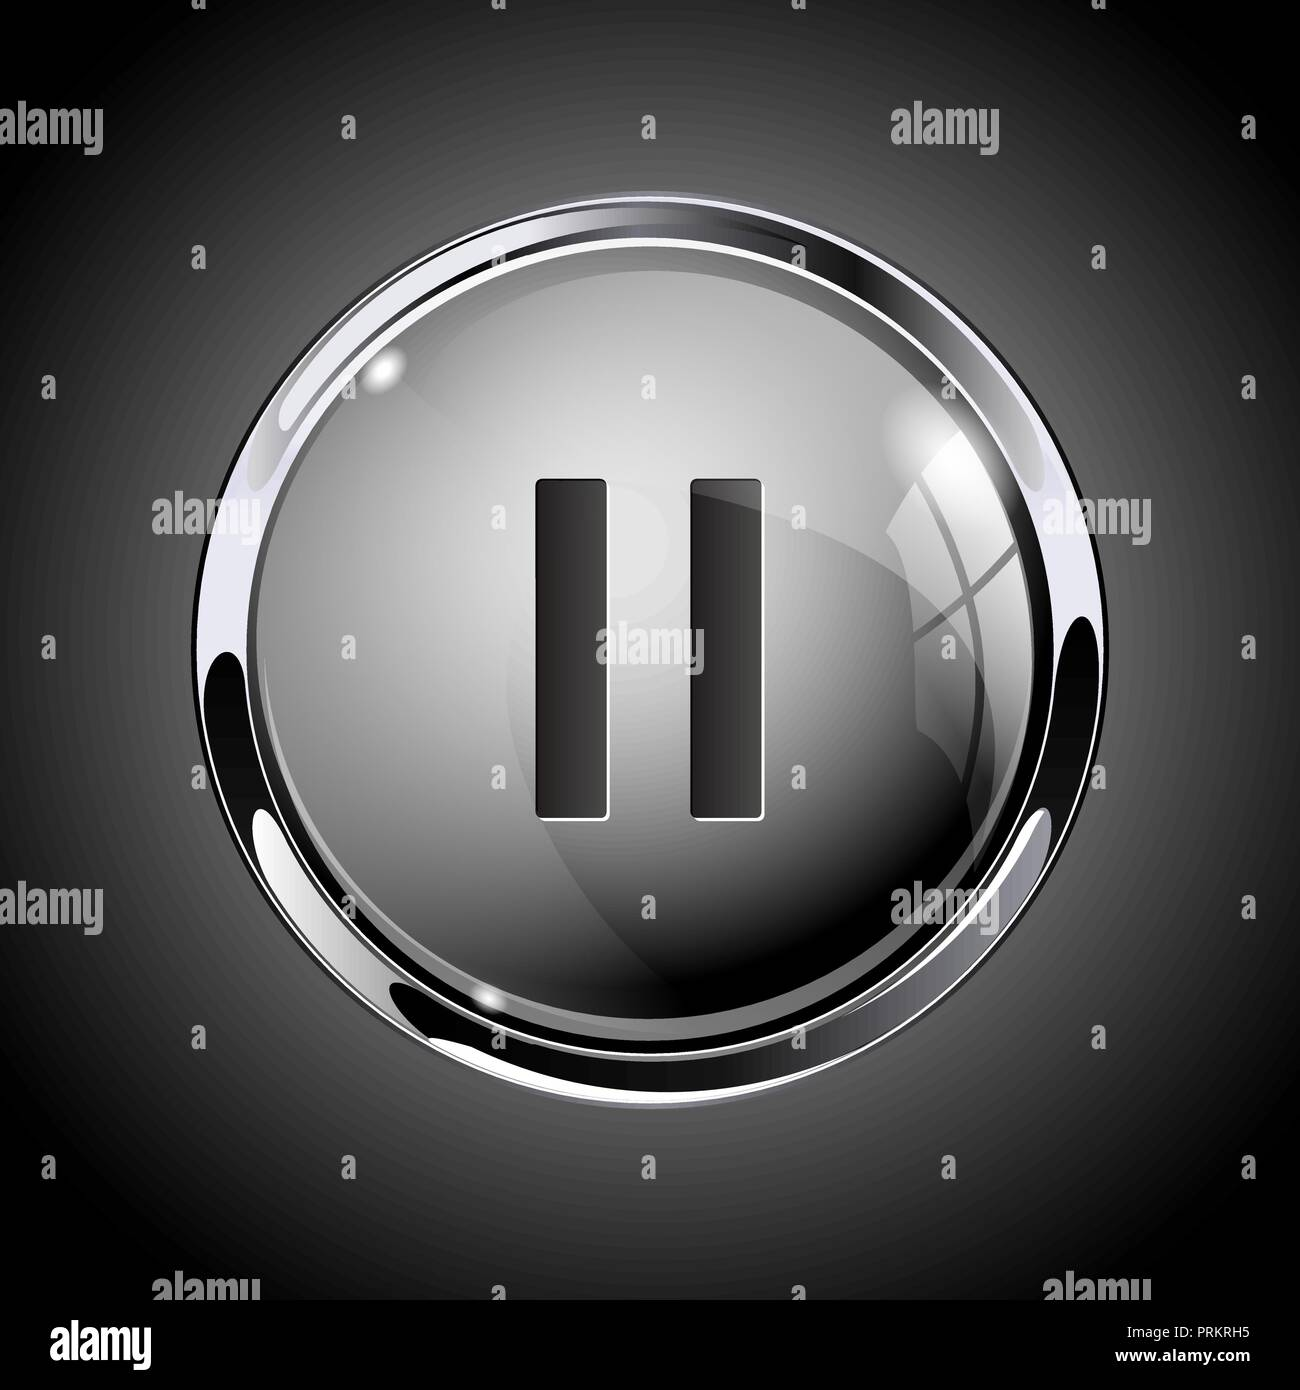 Pause button. 3d shiny gray icon for media - Stock Image